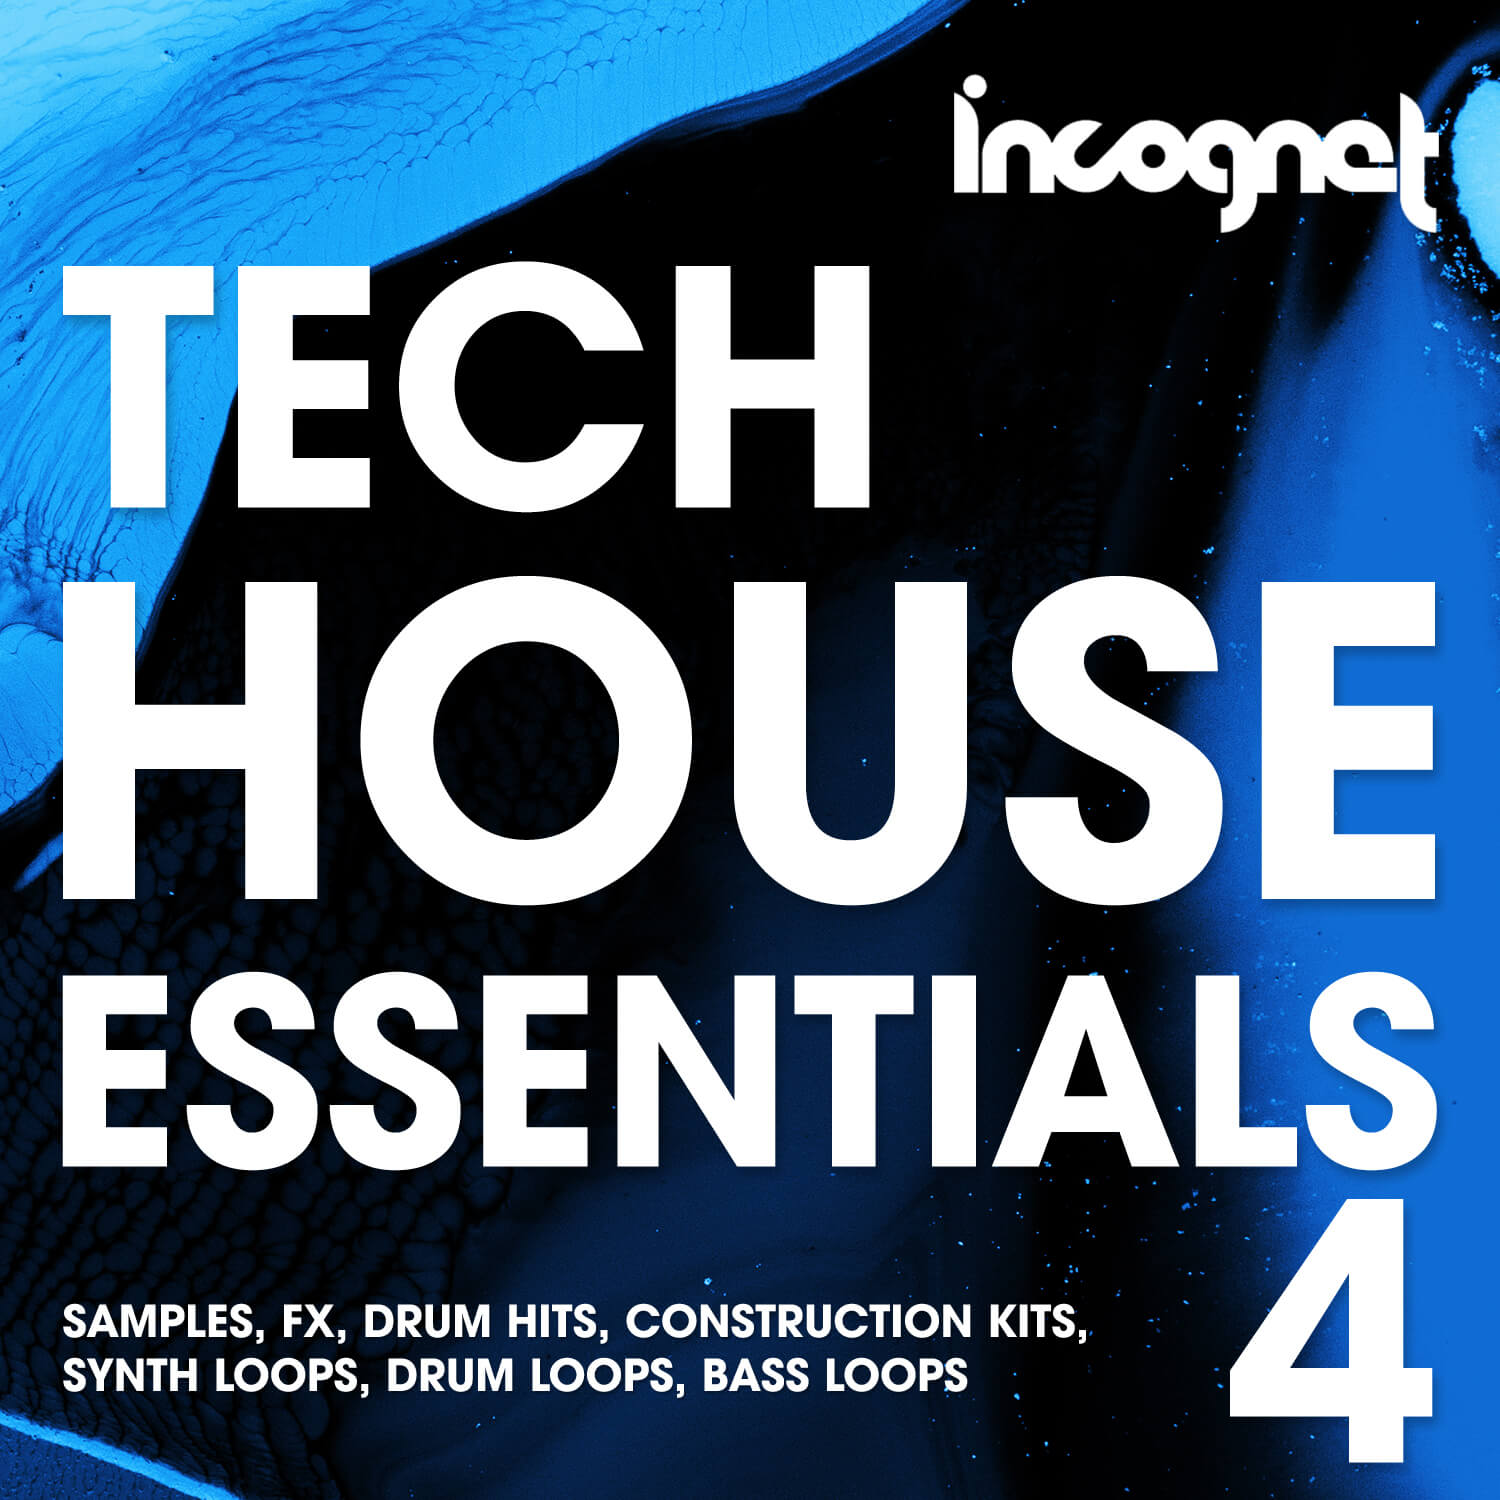 Incognet releases Tech House Essentials Vol 4 sample pack